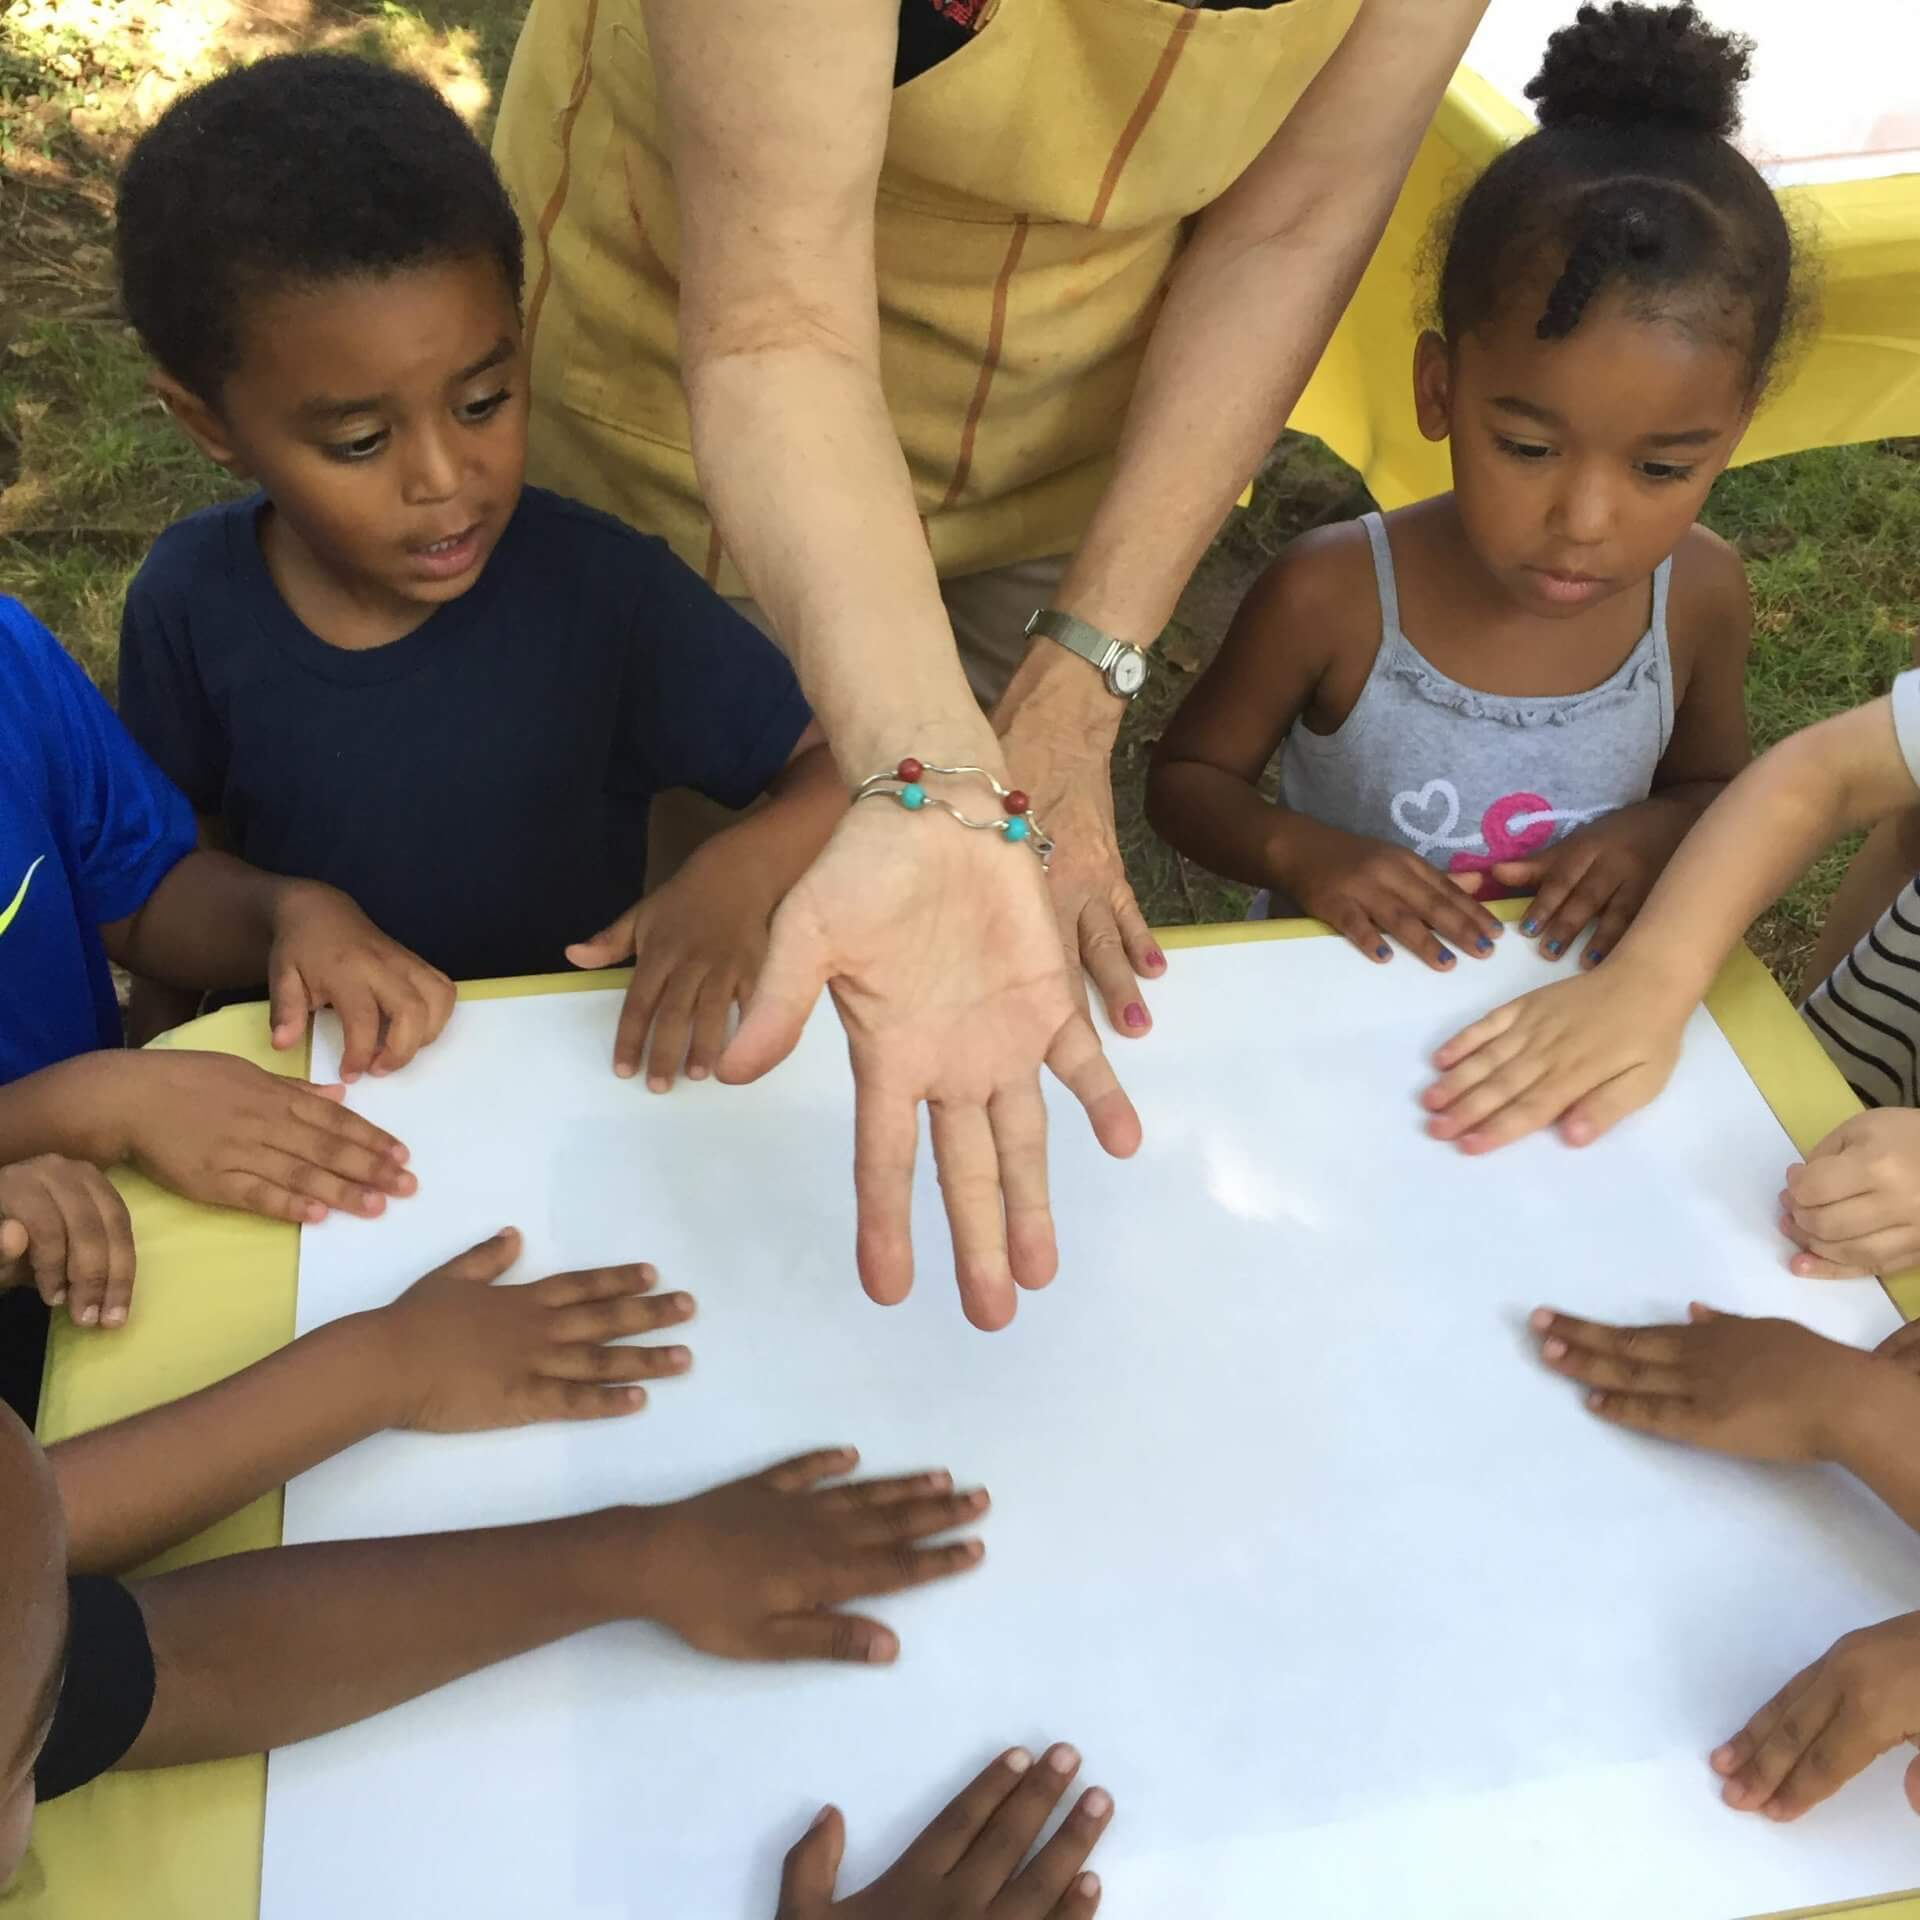 Young children gathered around a table getting ready to make an art project on a large, white piece of paper.